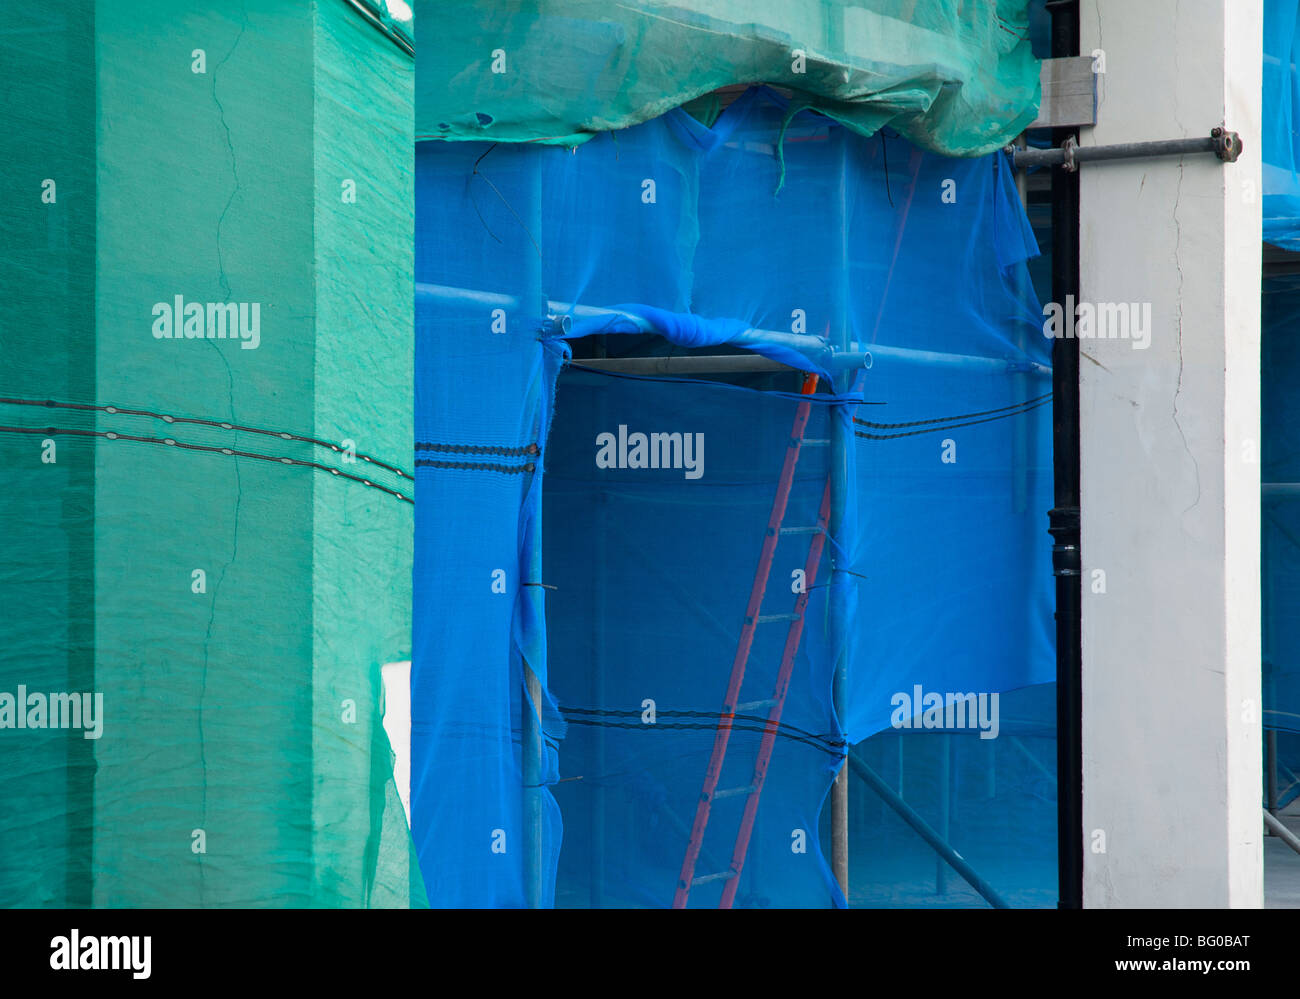 Scaffolding on building being renovated - Stock Image